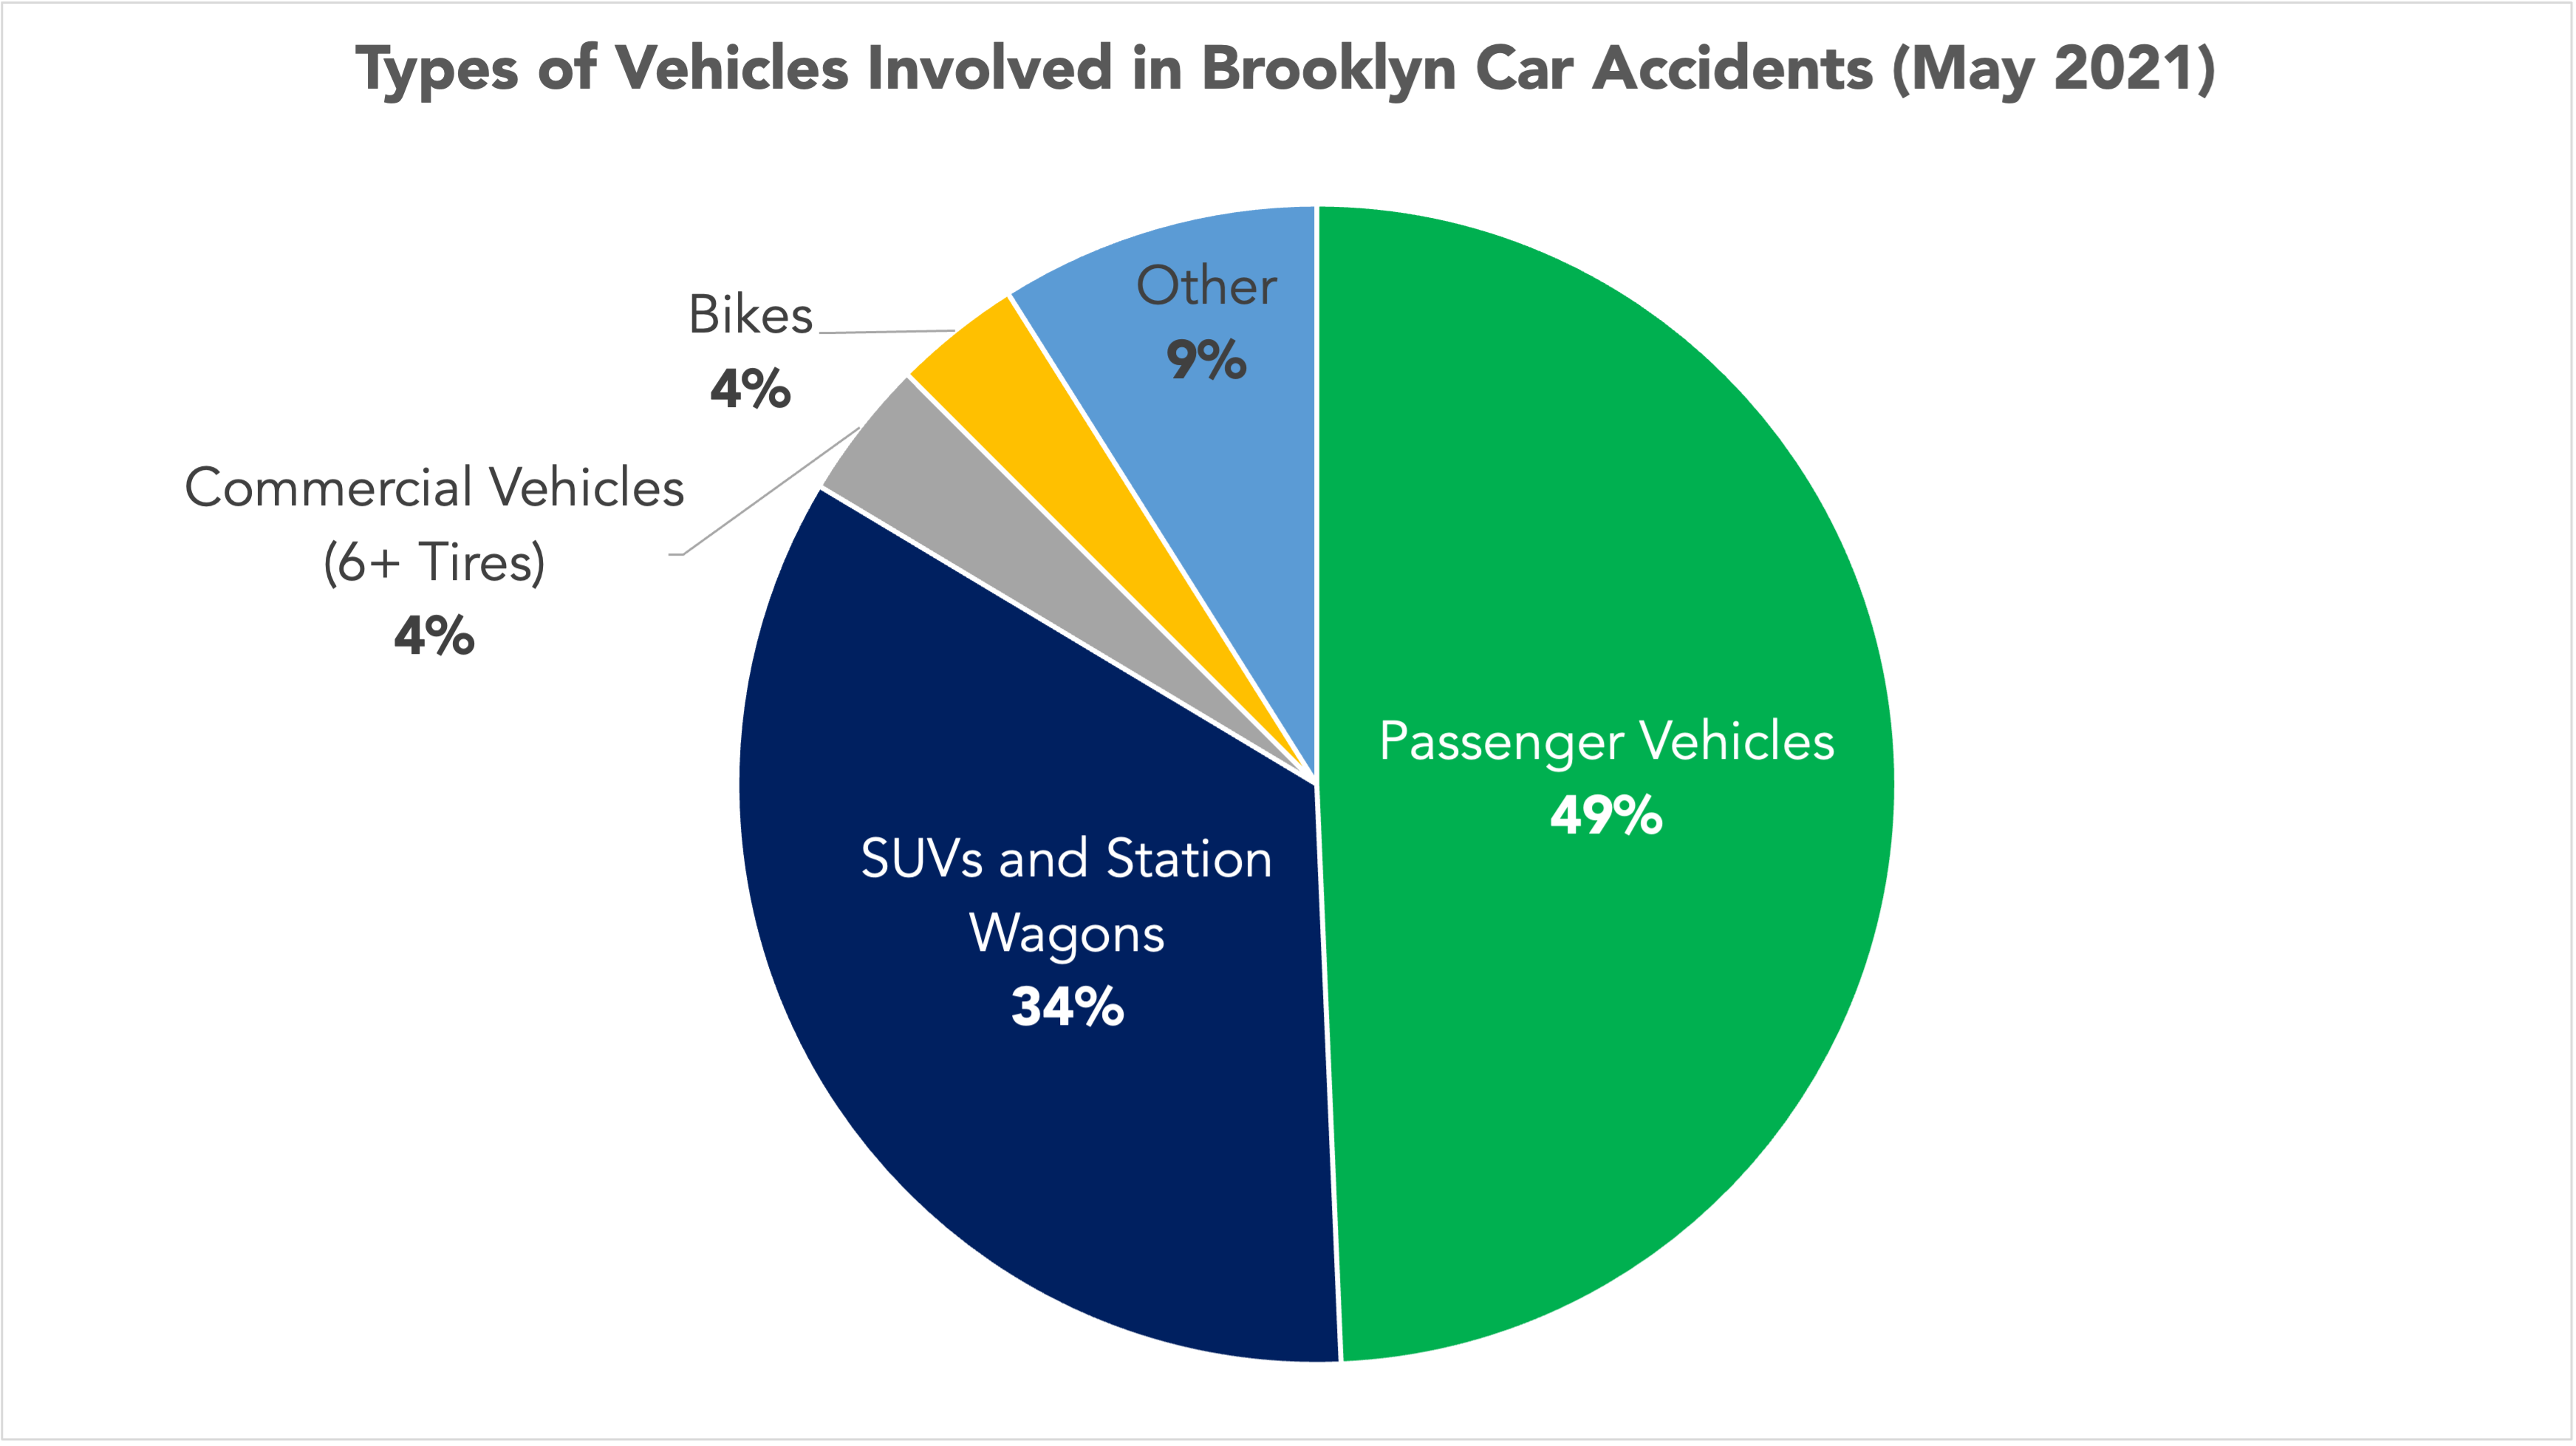 pie chart of the types of vehicles involved in Brooklyn, NY car accidents